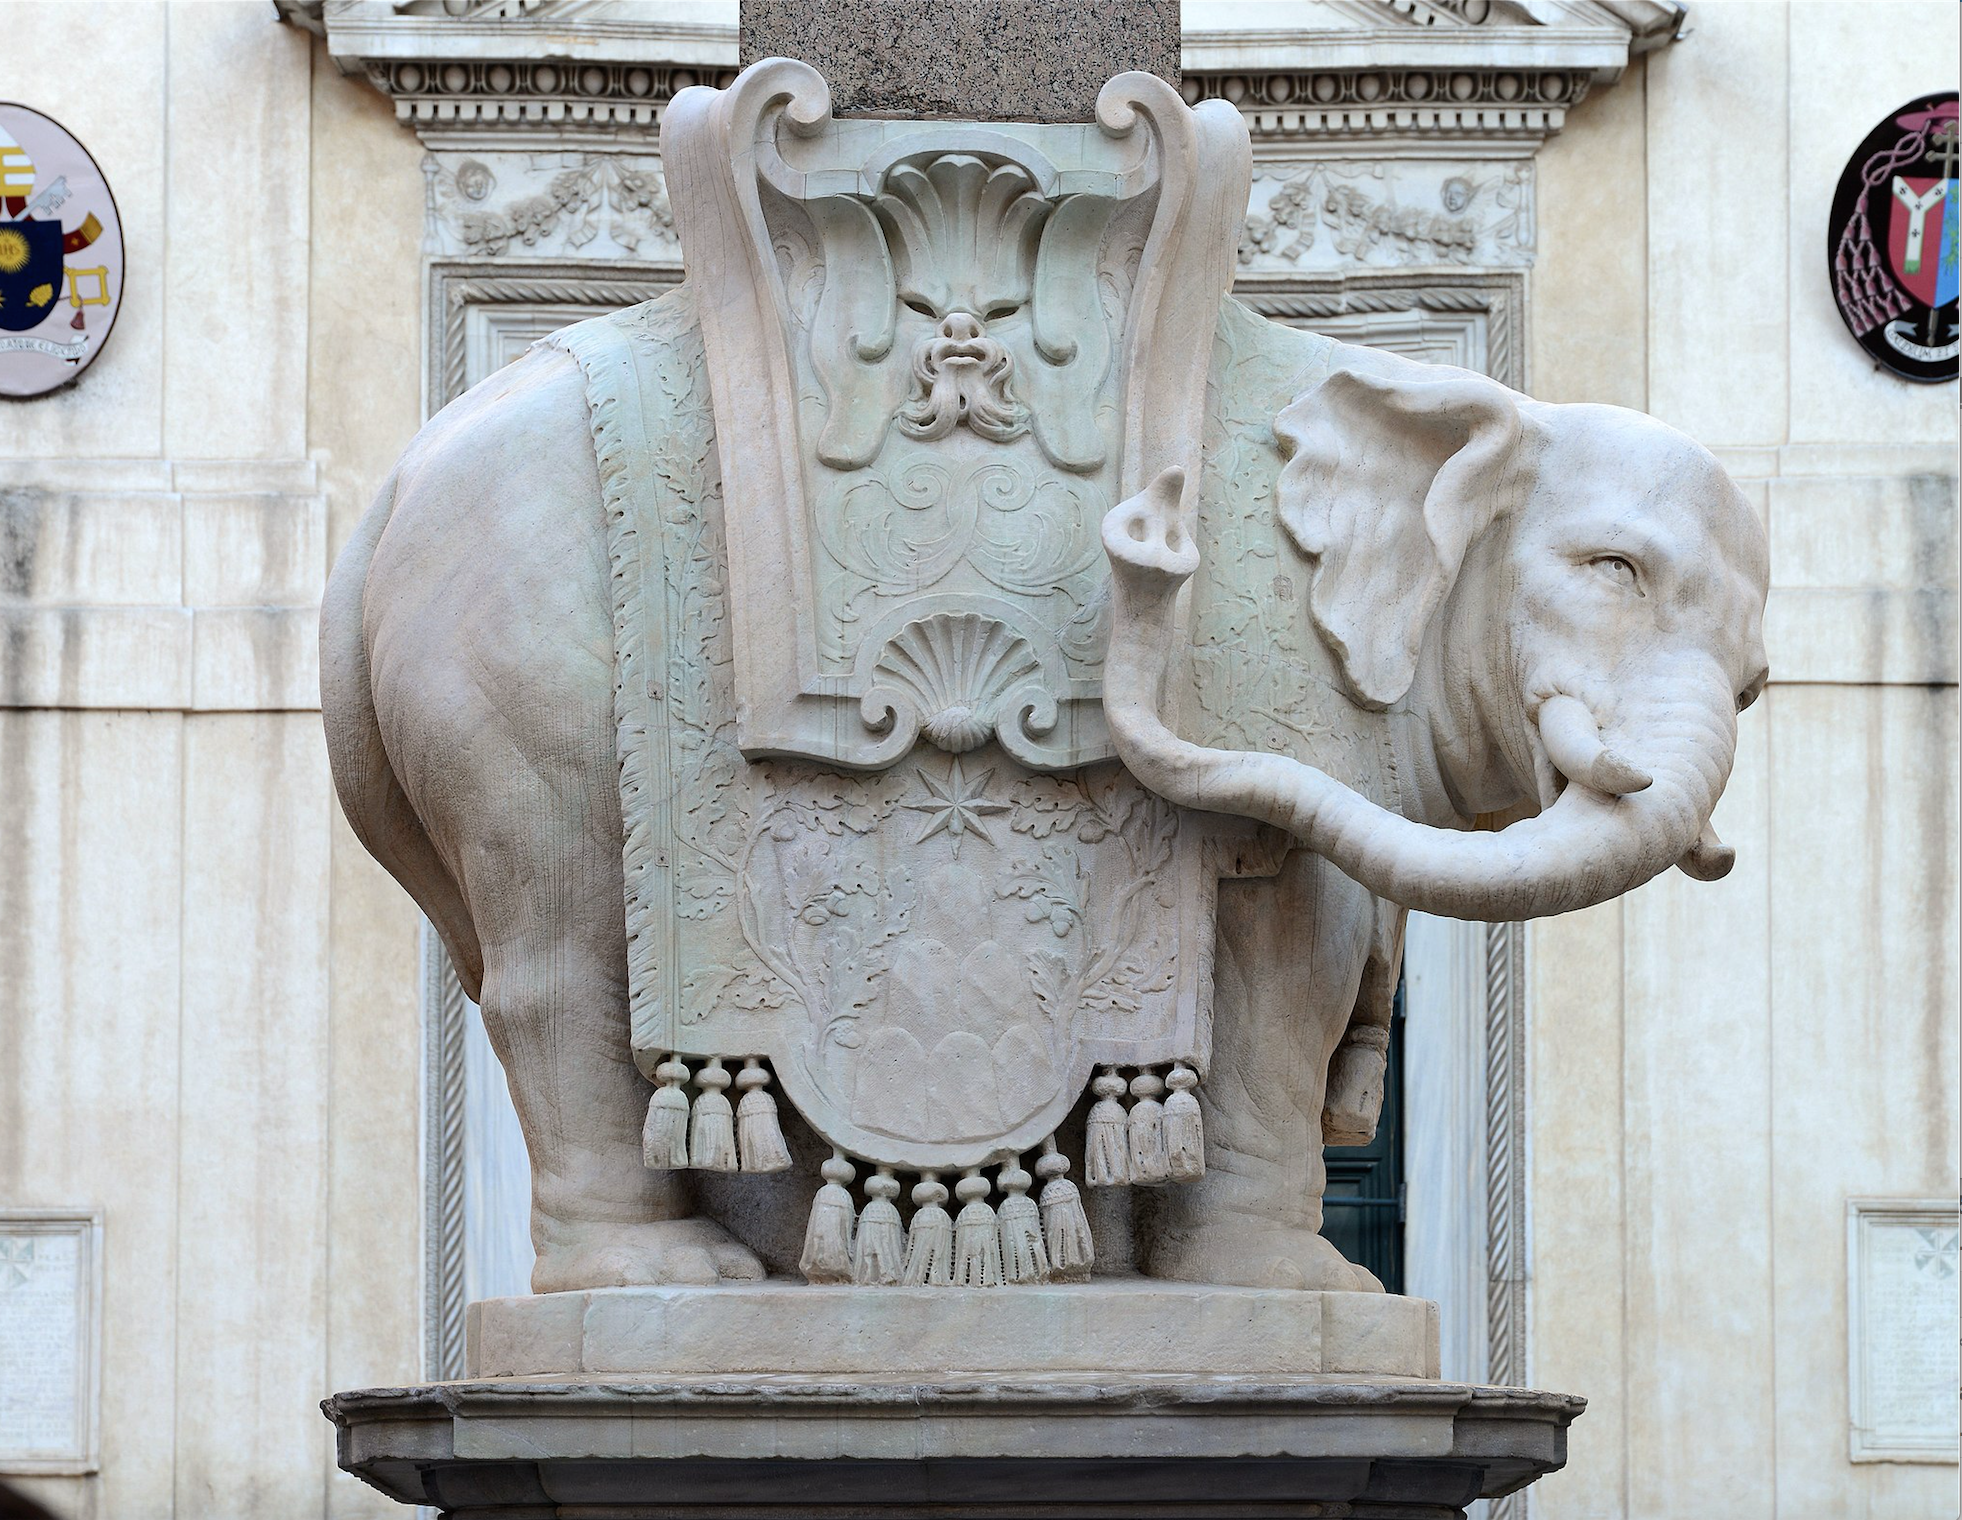 Bernini's Elephant, Santa Maria sopra Minerva   (WikiCommons: Alvesgaspar [CC BY-SA 4.0 (https://creativecommons.org/licenses/by-sa/4.0)])  https://commons.wikimedia.org/wiki/File:Elephant_Bernini_September_2015-1.jpg